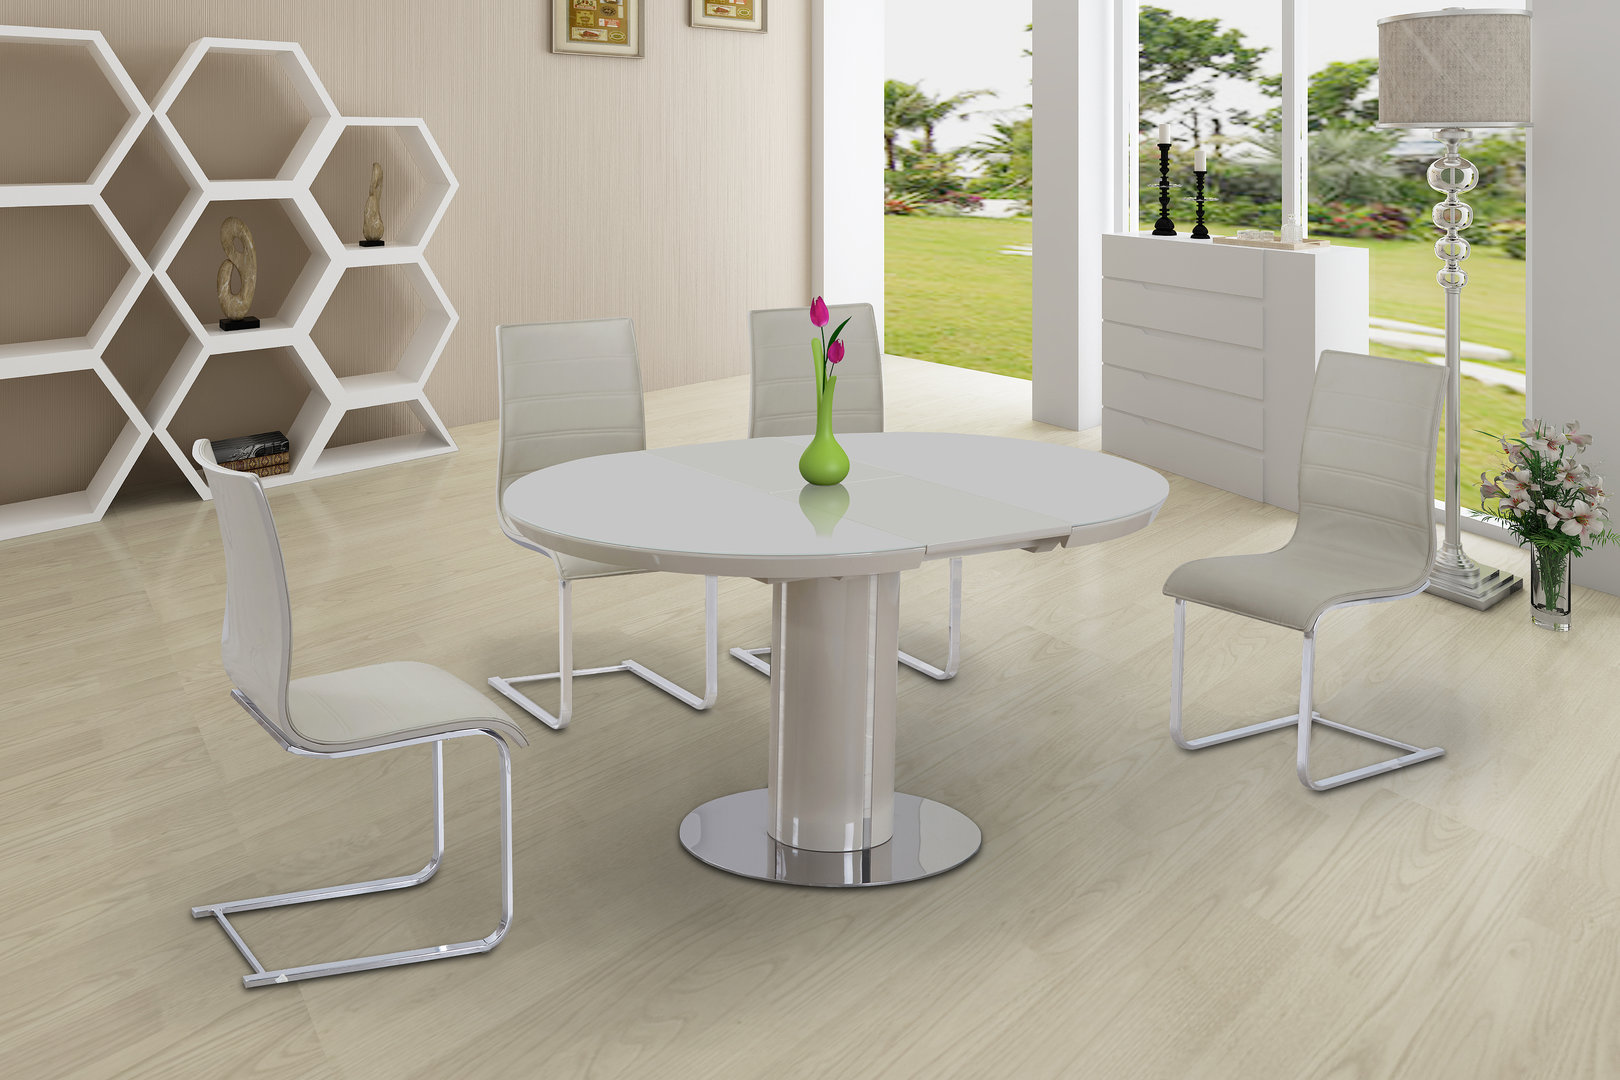 Round cream glass high gloss dining table 6 chairs for Round dining table and chairs